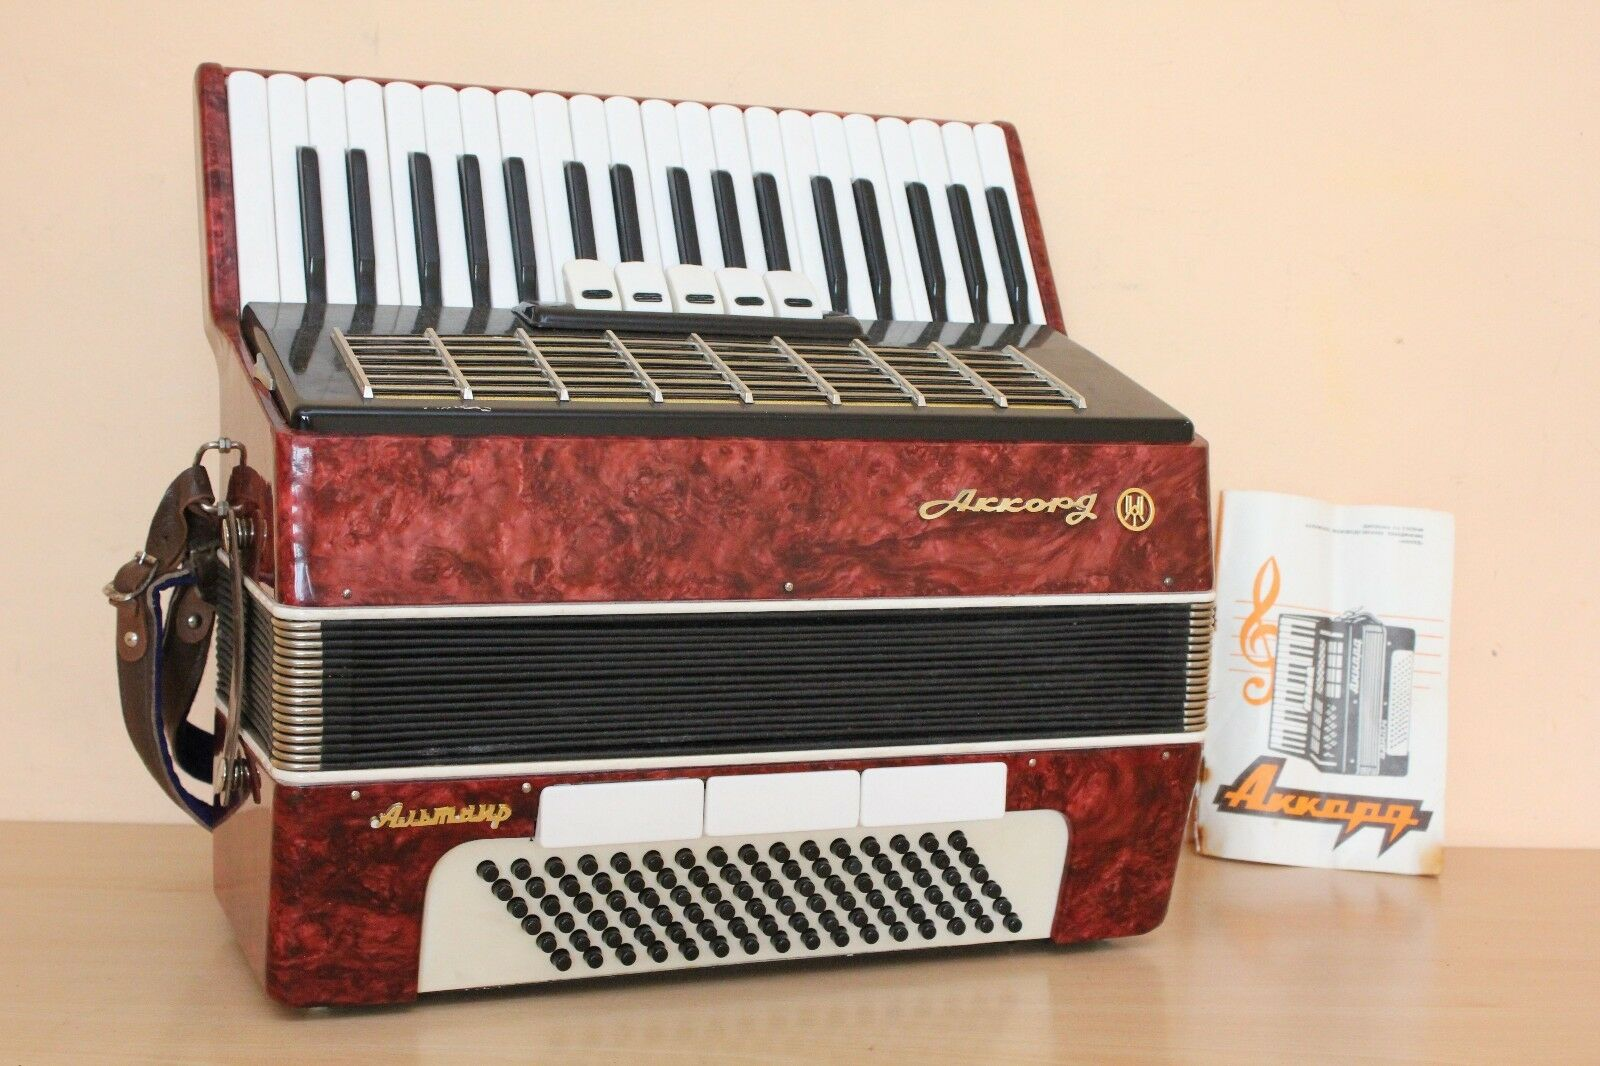 Akkord Altair Vintage Russian 96 Bass LMM Accordion Akkordion Fisarmonica + Case